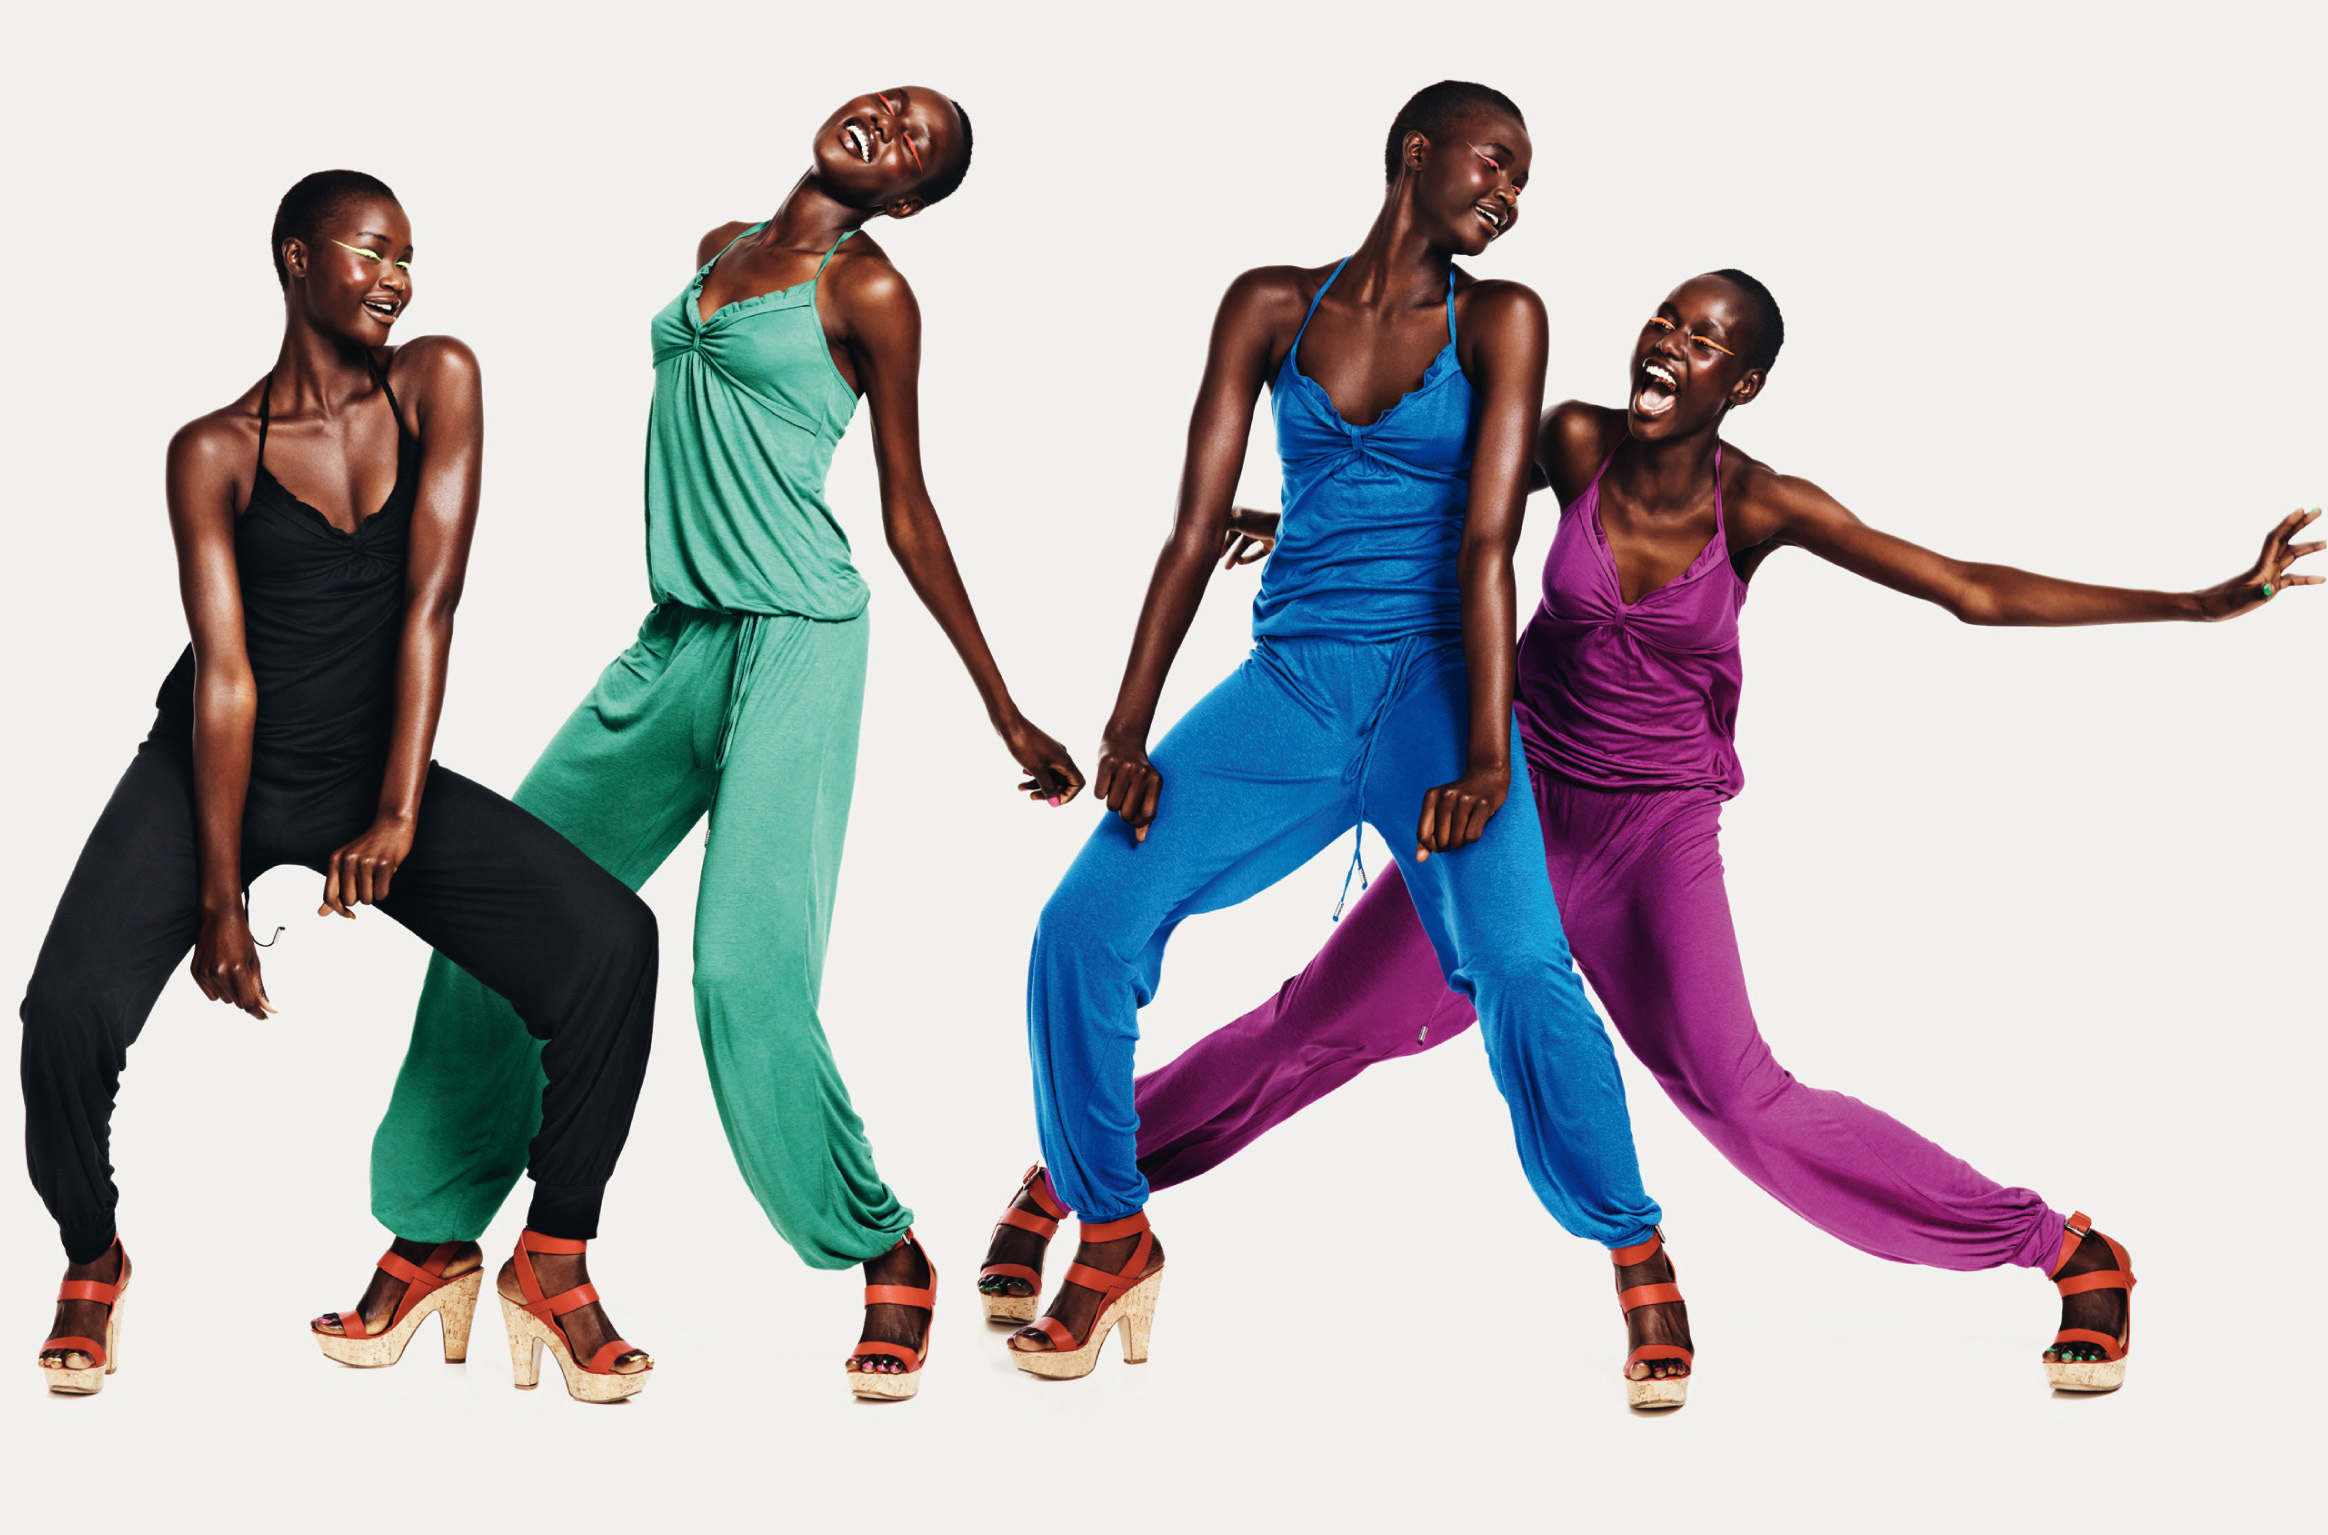 United colors of benneton spring summer 2010 ad campaign for Benetton we are colors